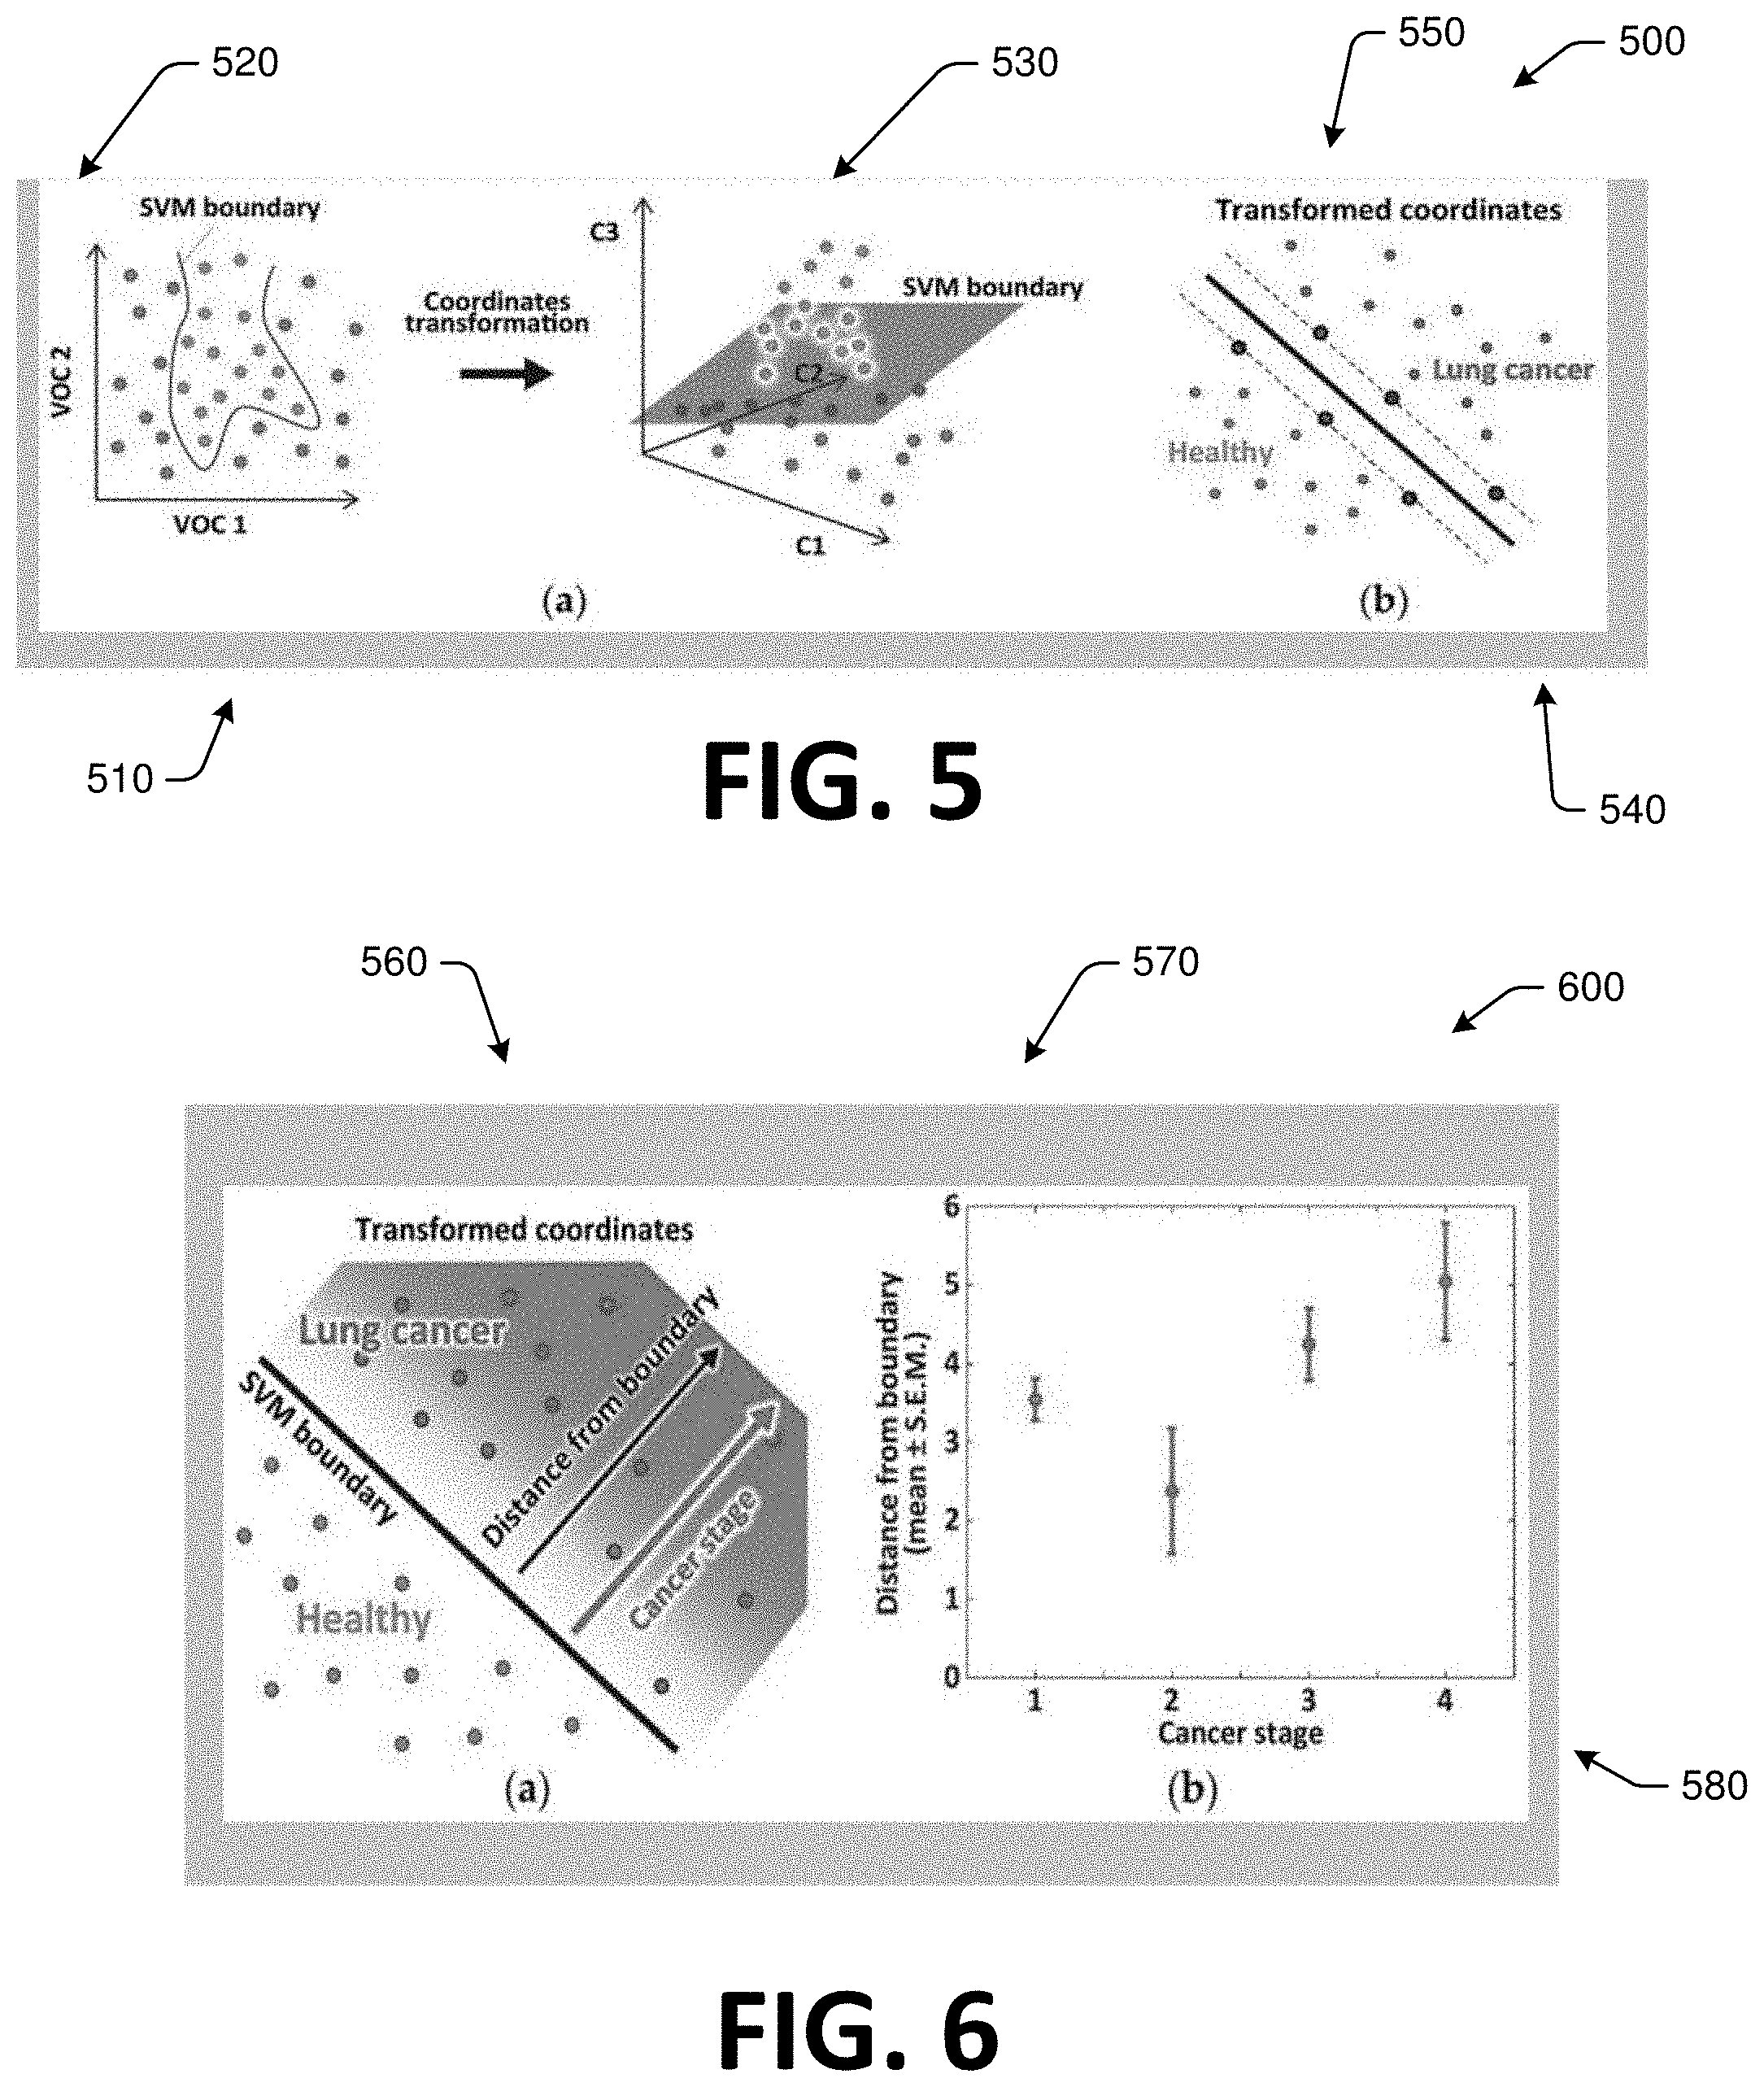 Biomarkers For Systems, Methods, And Devices For Detecting